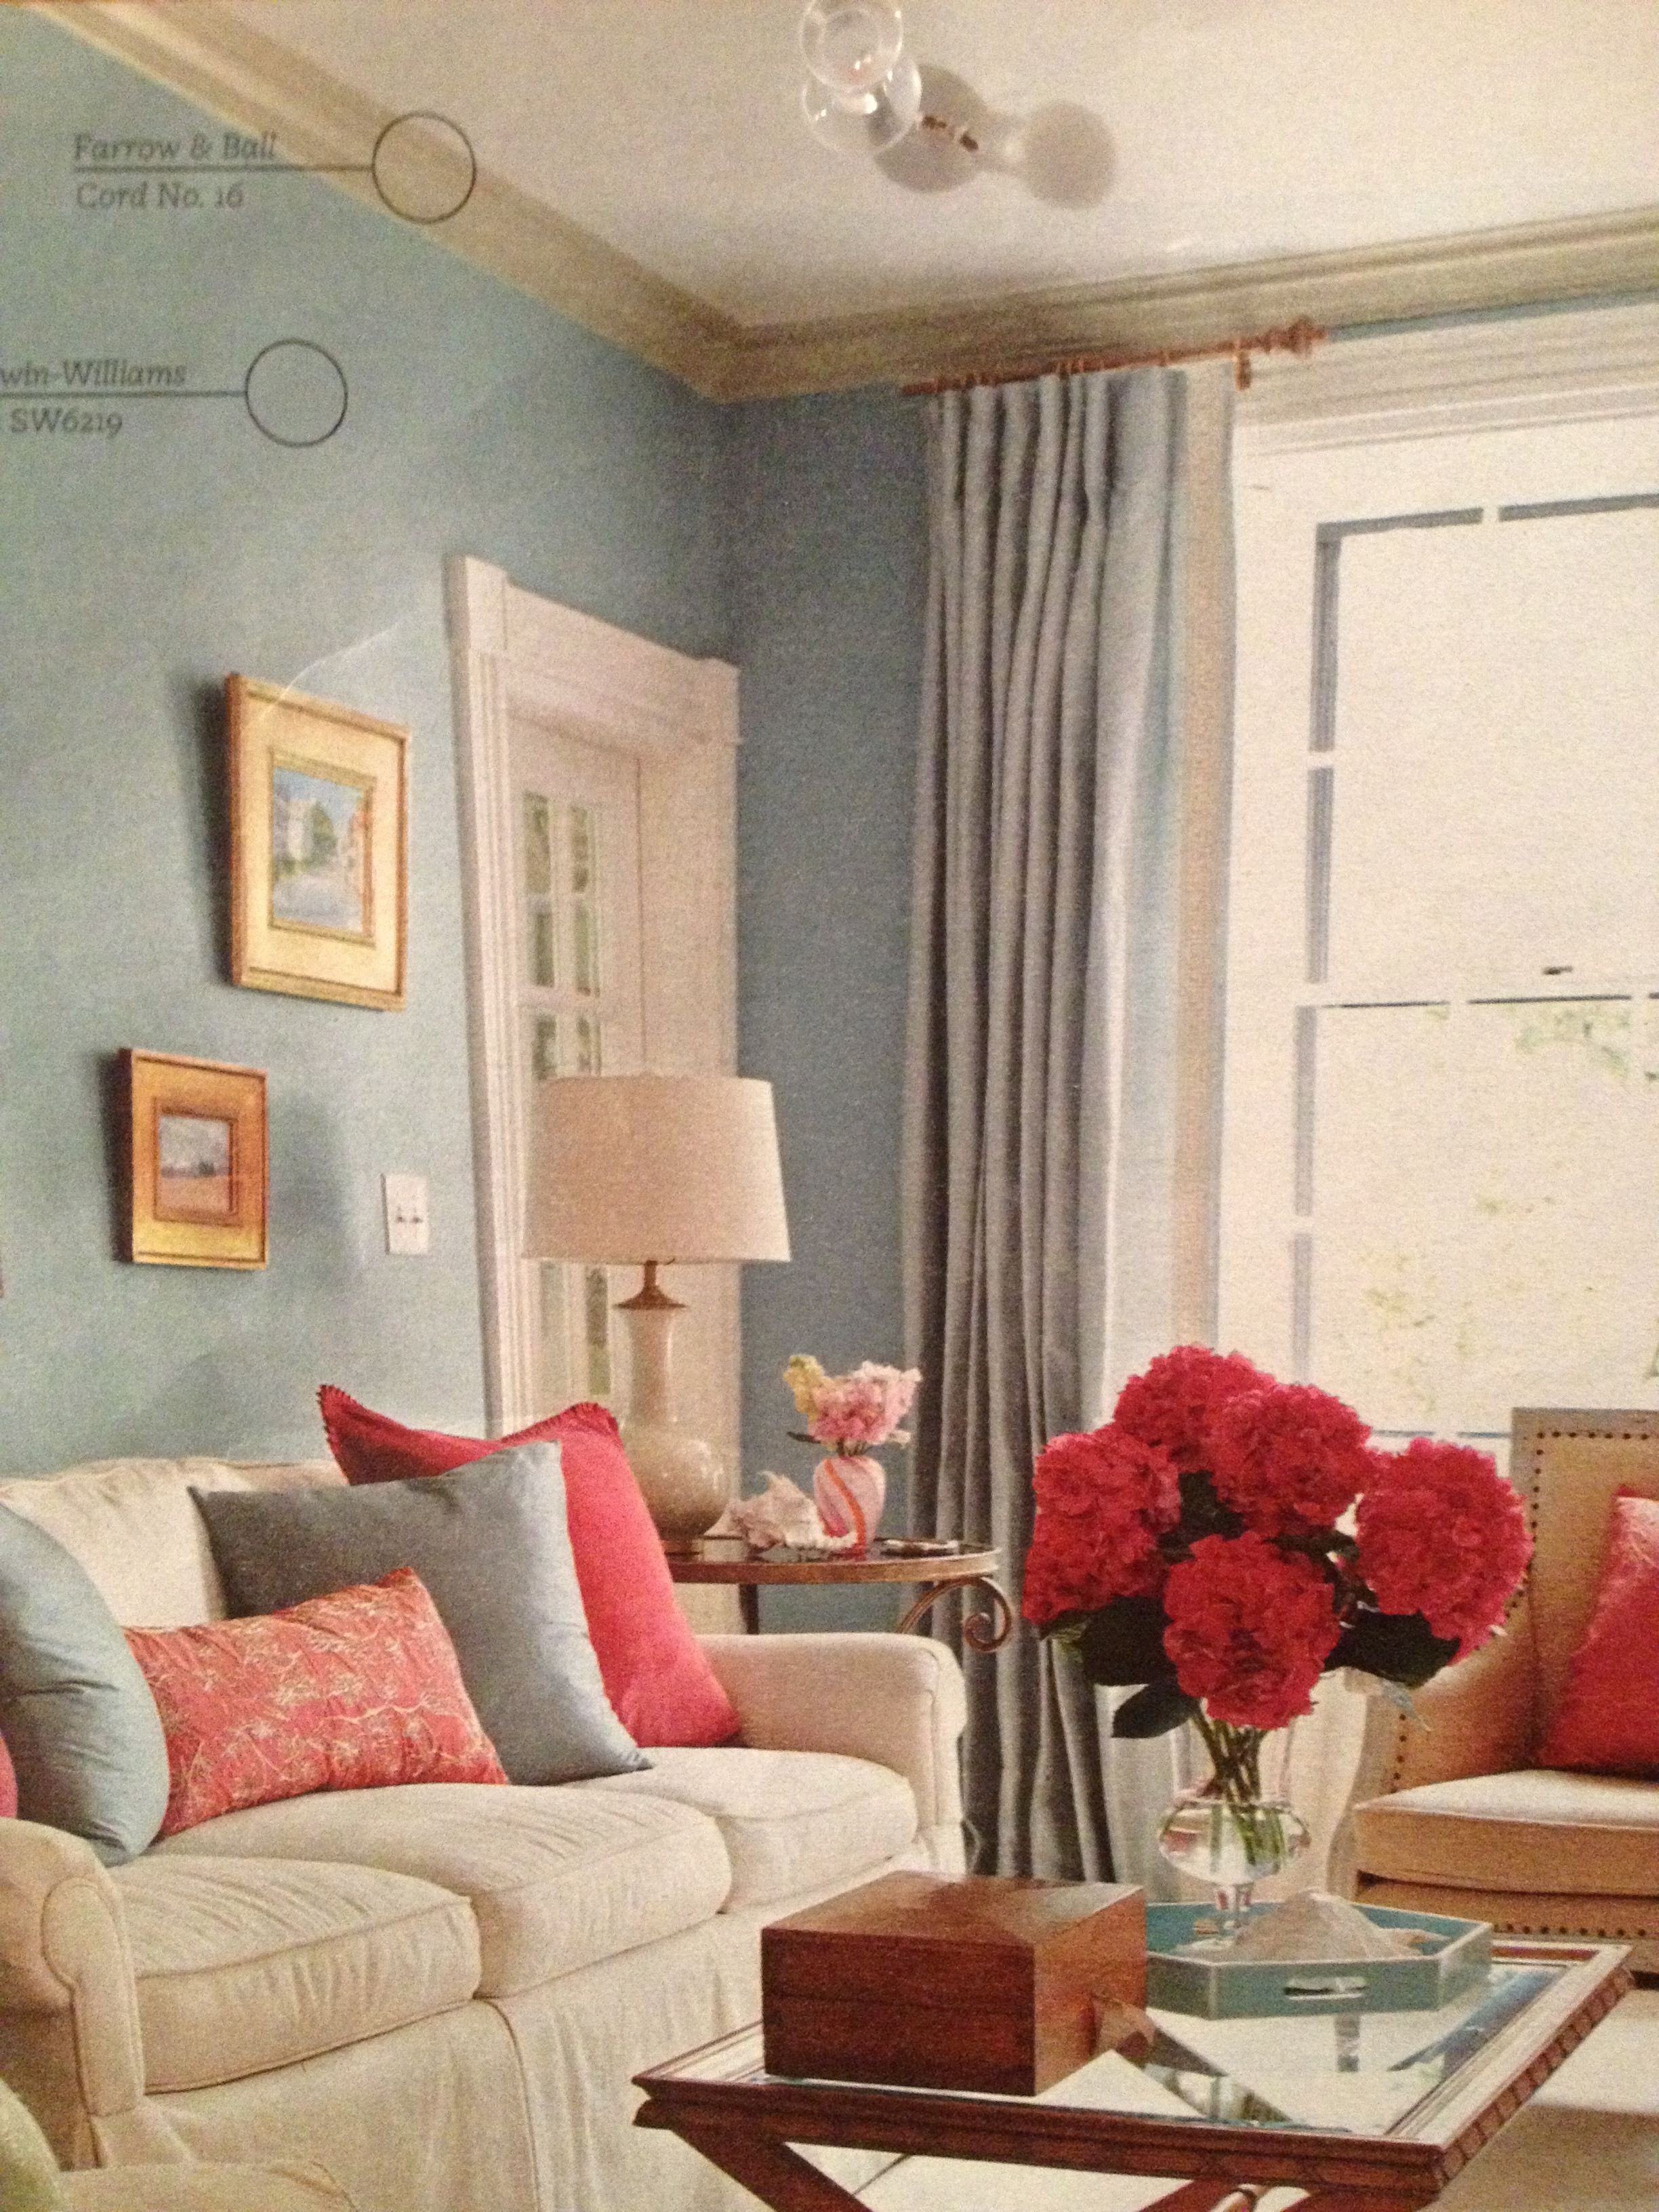 Room with Sherwin Williams Rain. We want to use this color